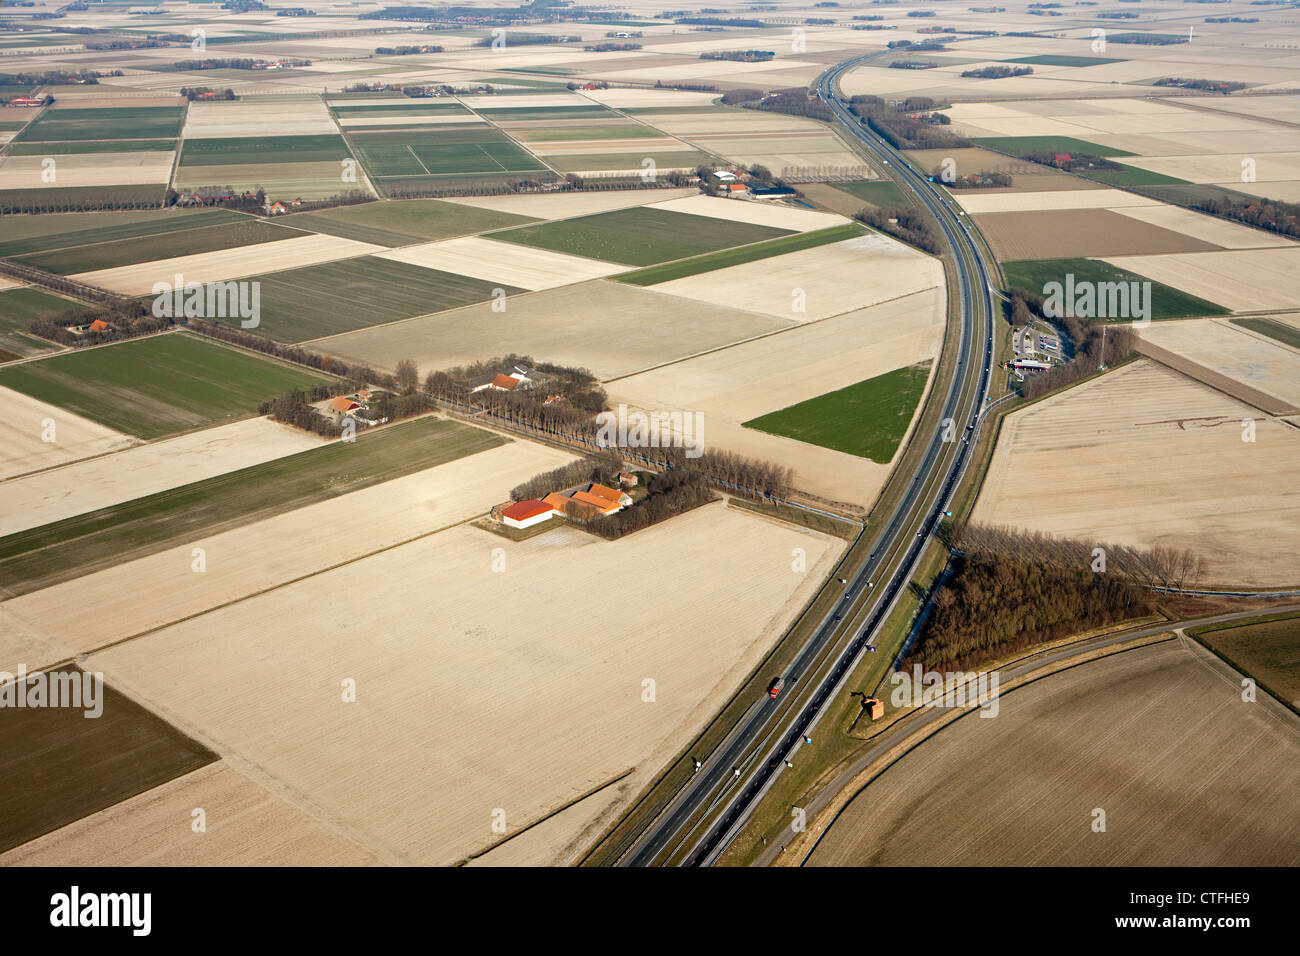 The Netherlands, Nagele, Farms and farmland in Flevopolder. Highway A6. Aerial. - Stock Image